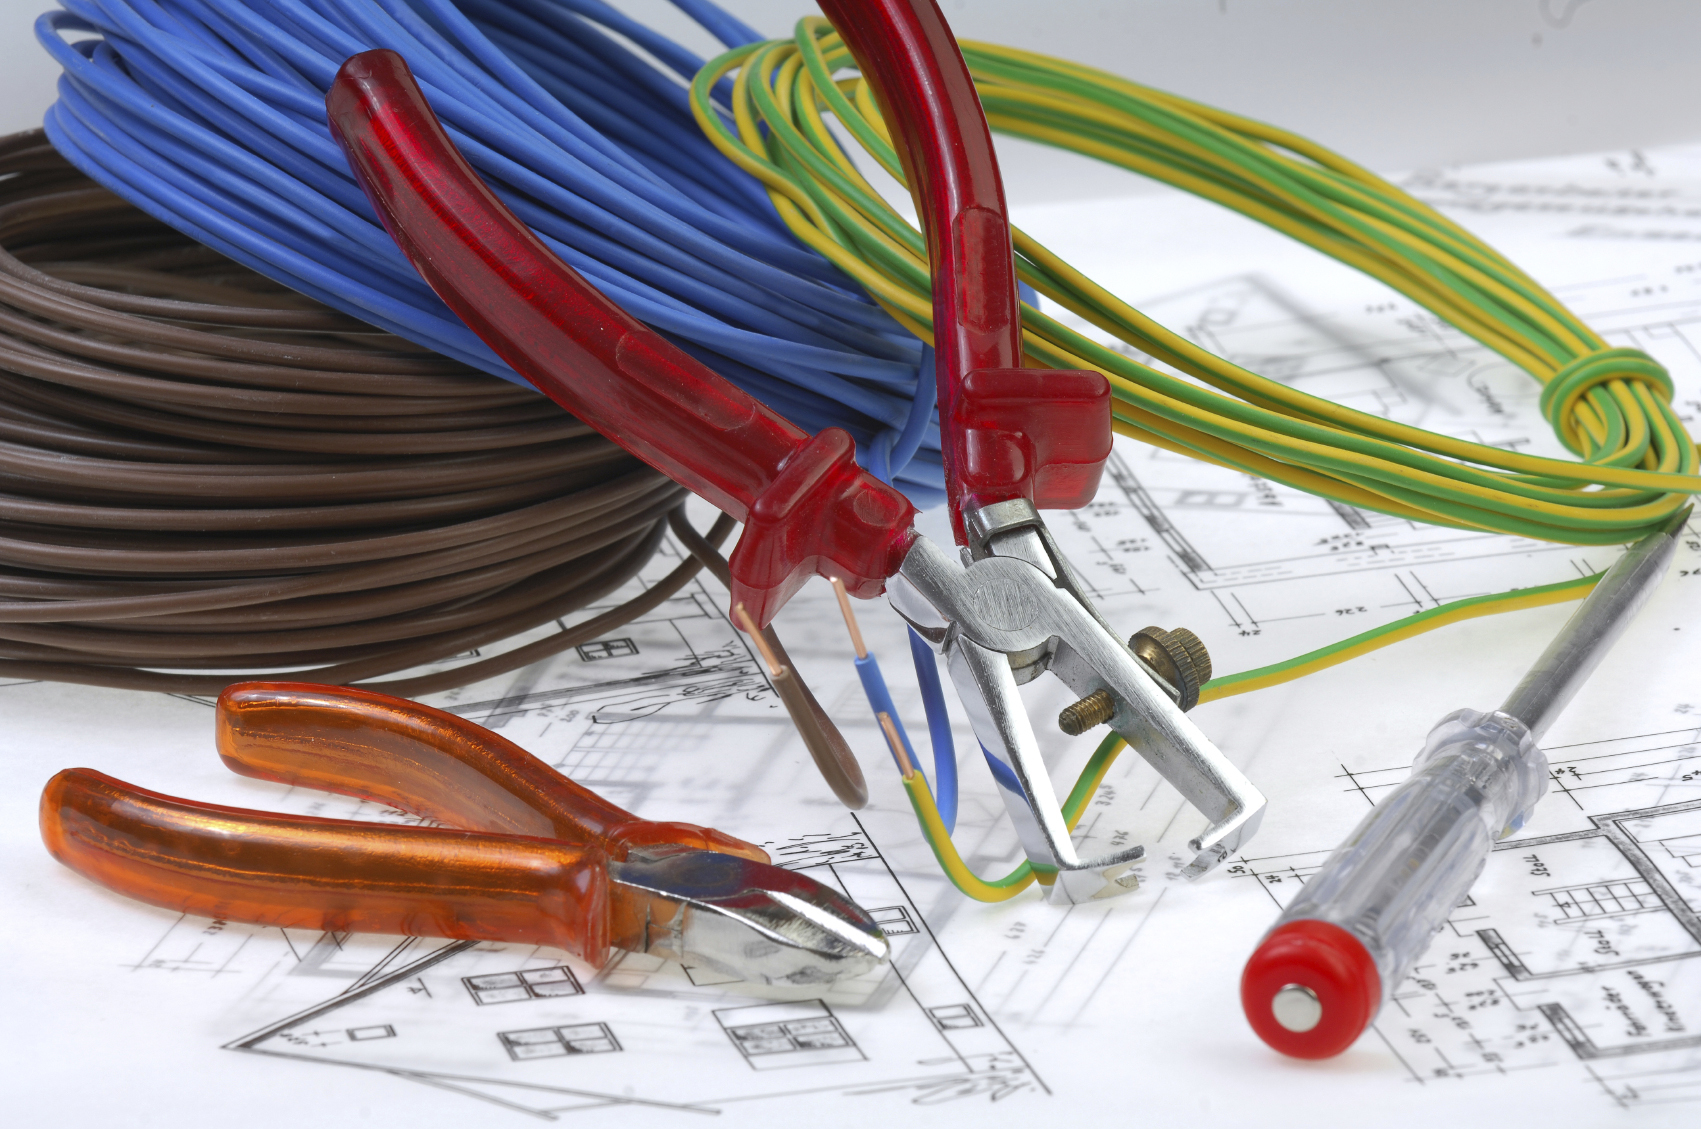 Hepburn Electrical Electricians Rotorua Electrician Services Wiring House Lights Nz